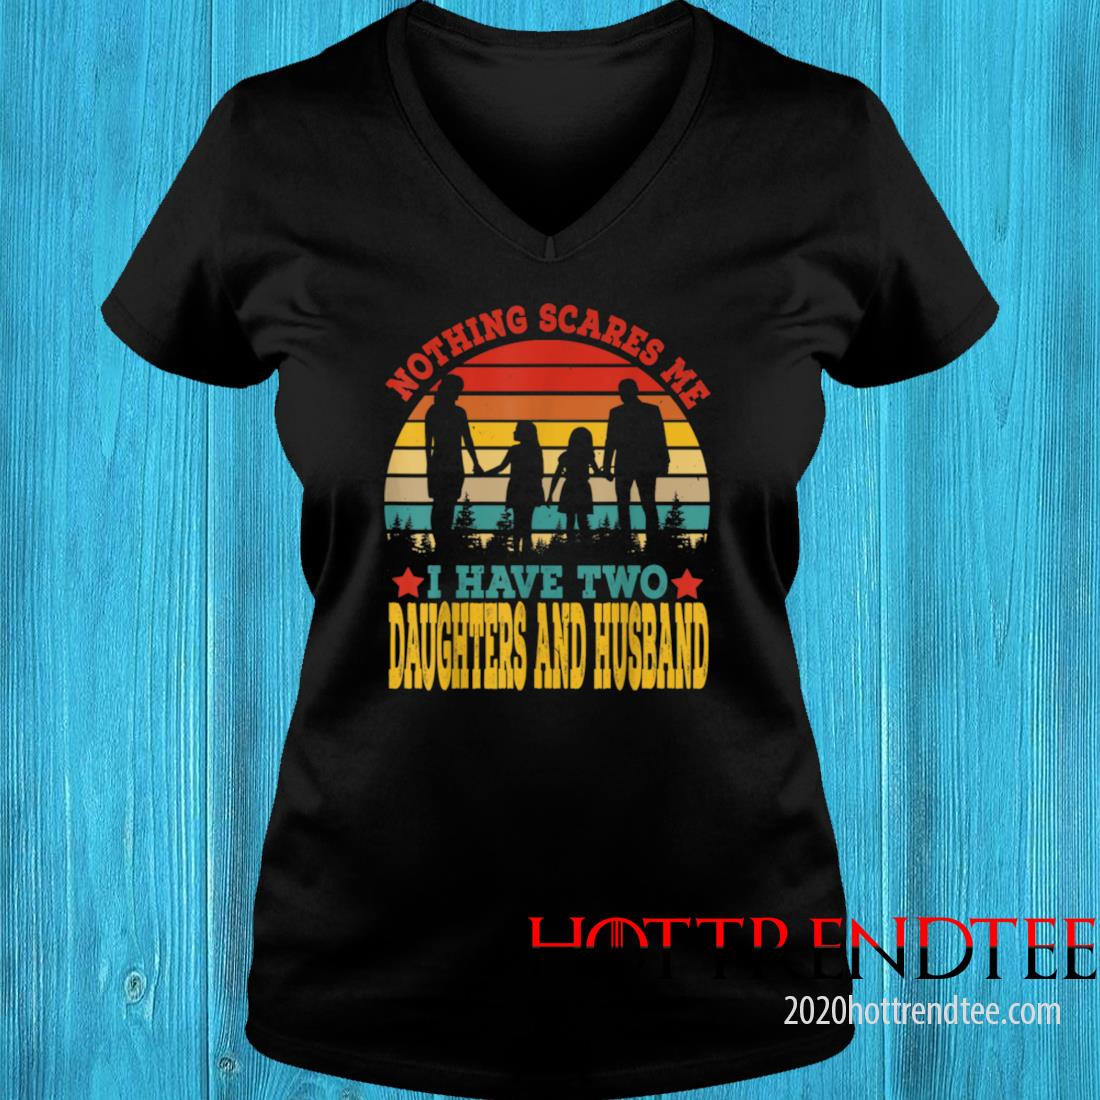 Vintage Retro I Have Two Daughters And Husband Mother's Day Shirt v-neck tee